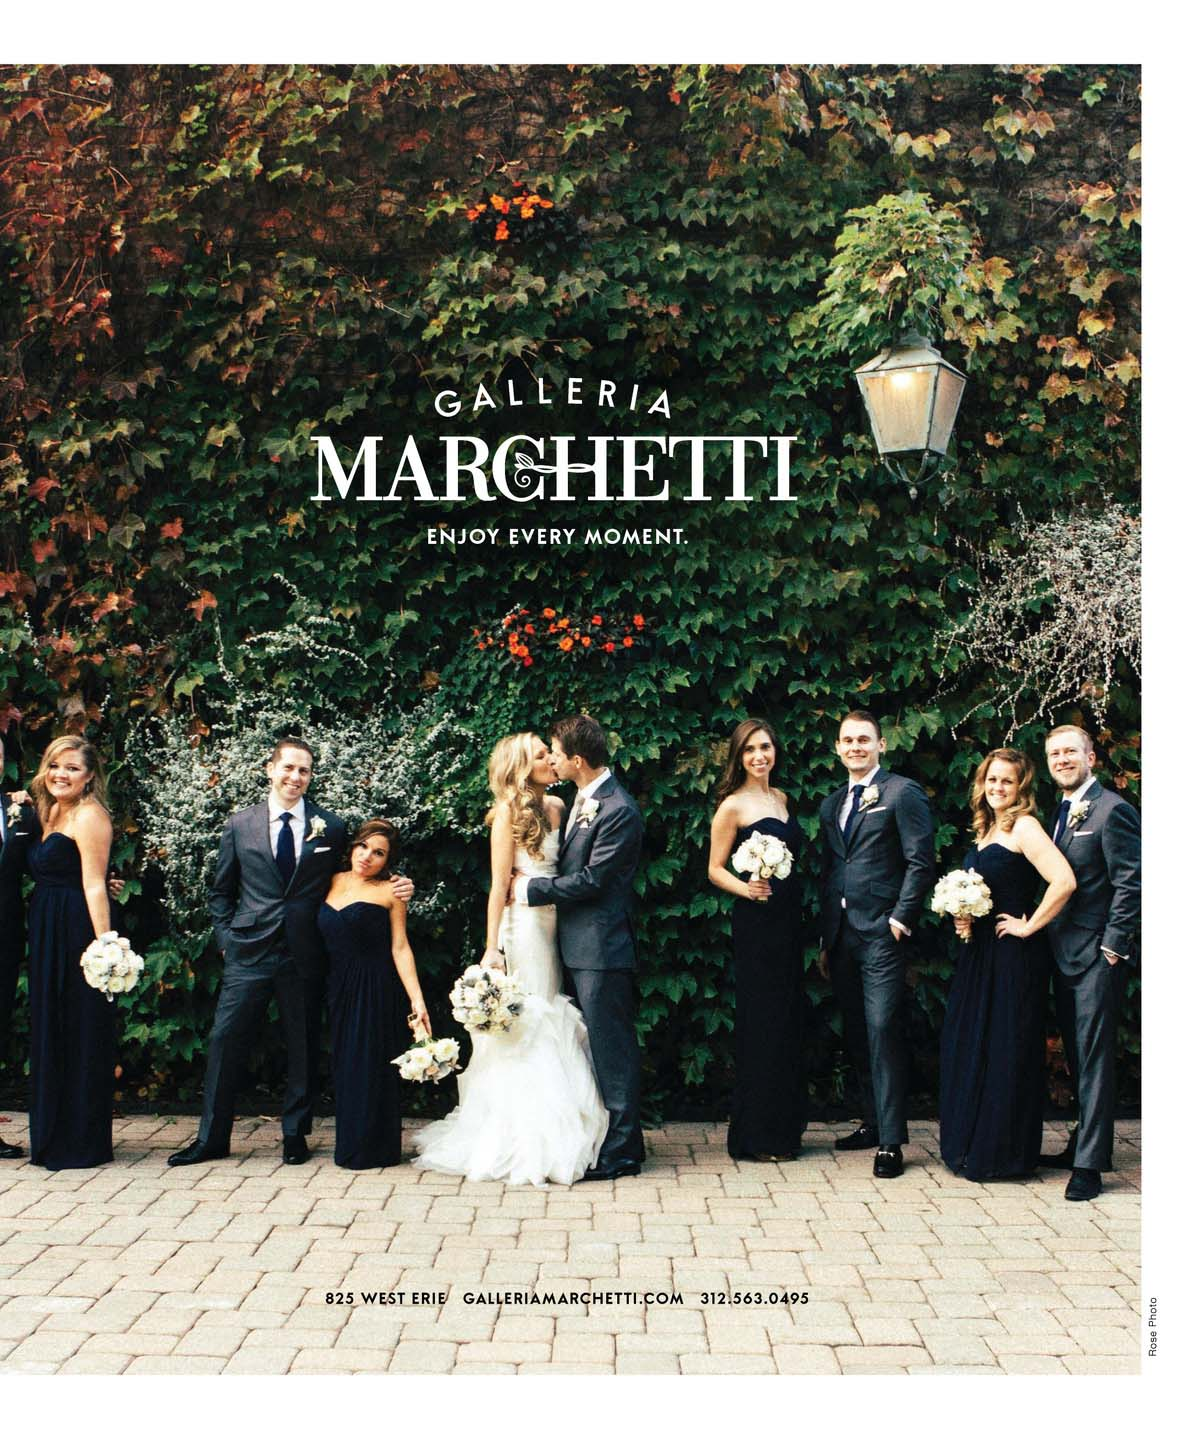 Luxury WEDDINGS Chicago Photography - SS 2018 Issue - Rose Photo Complete Coverage-4.jpg